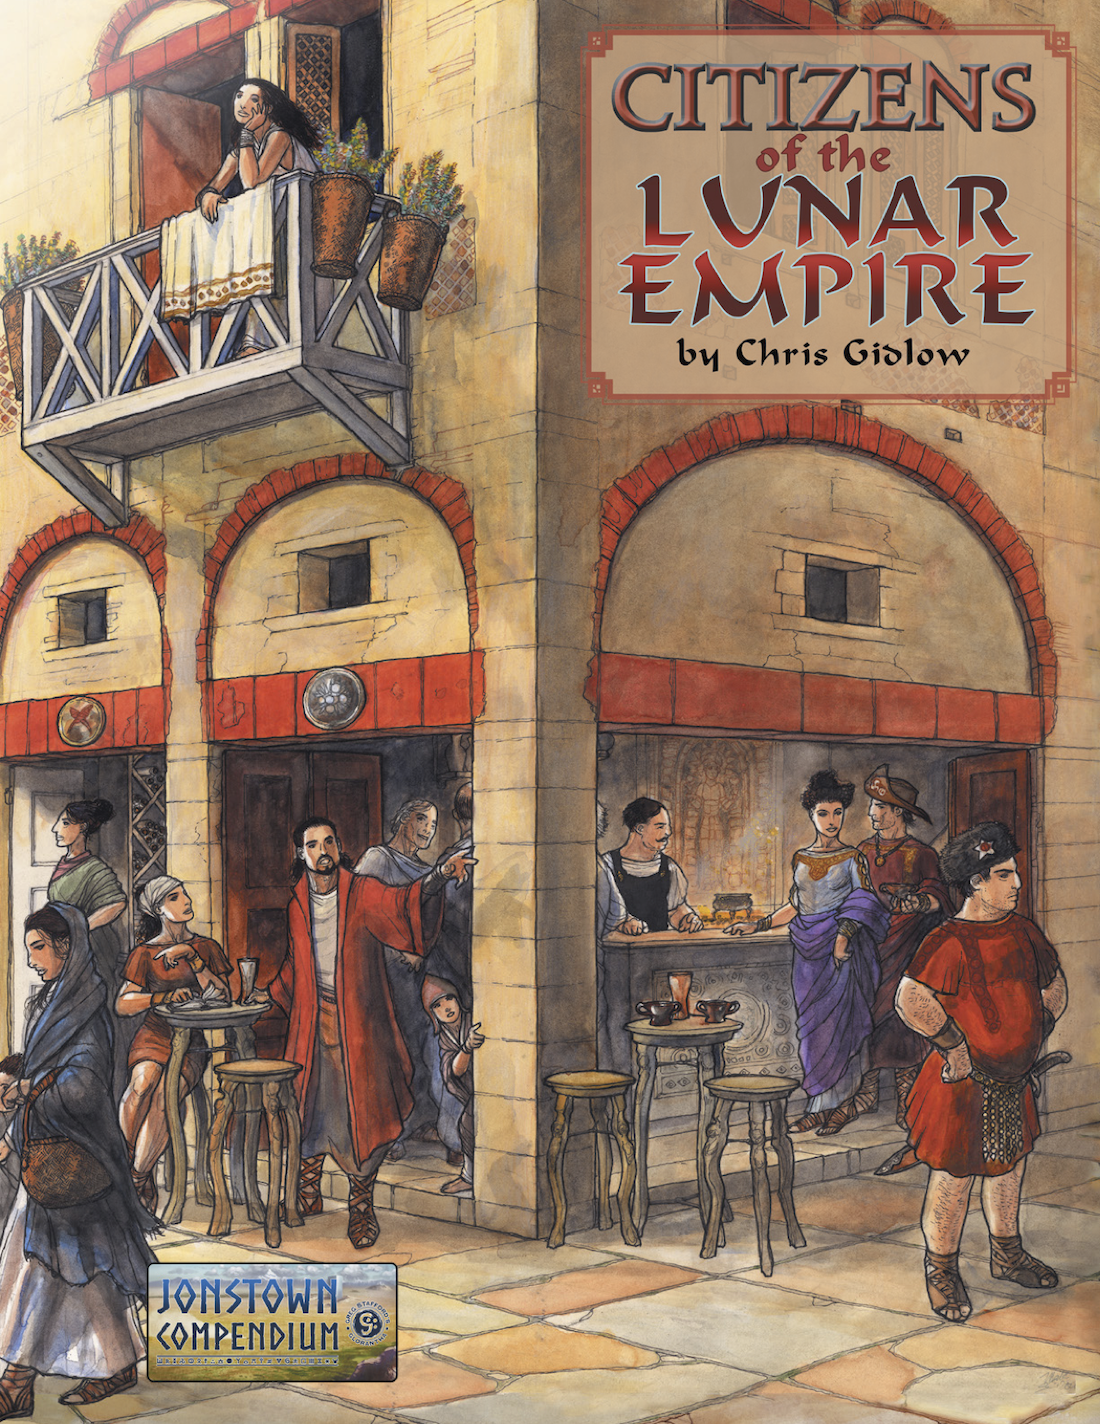 citizens-of-the-lunar-empire-cover.png